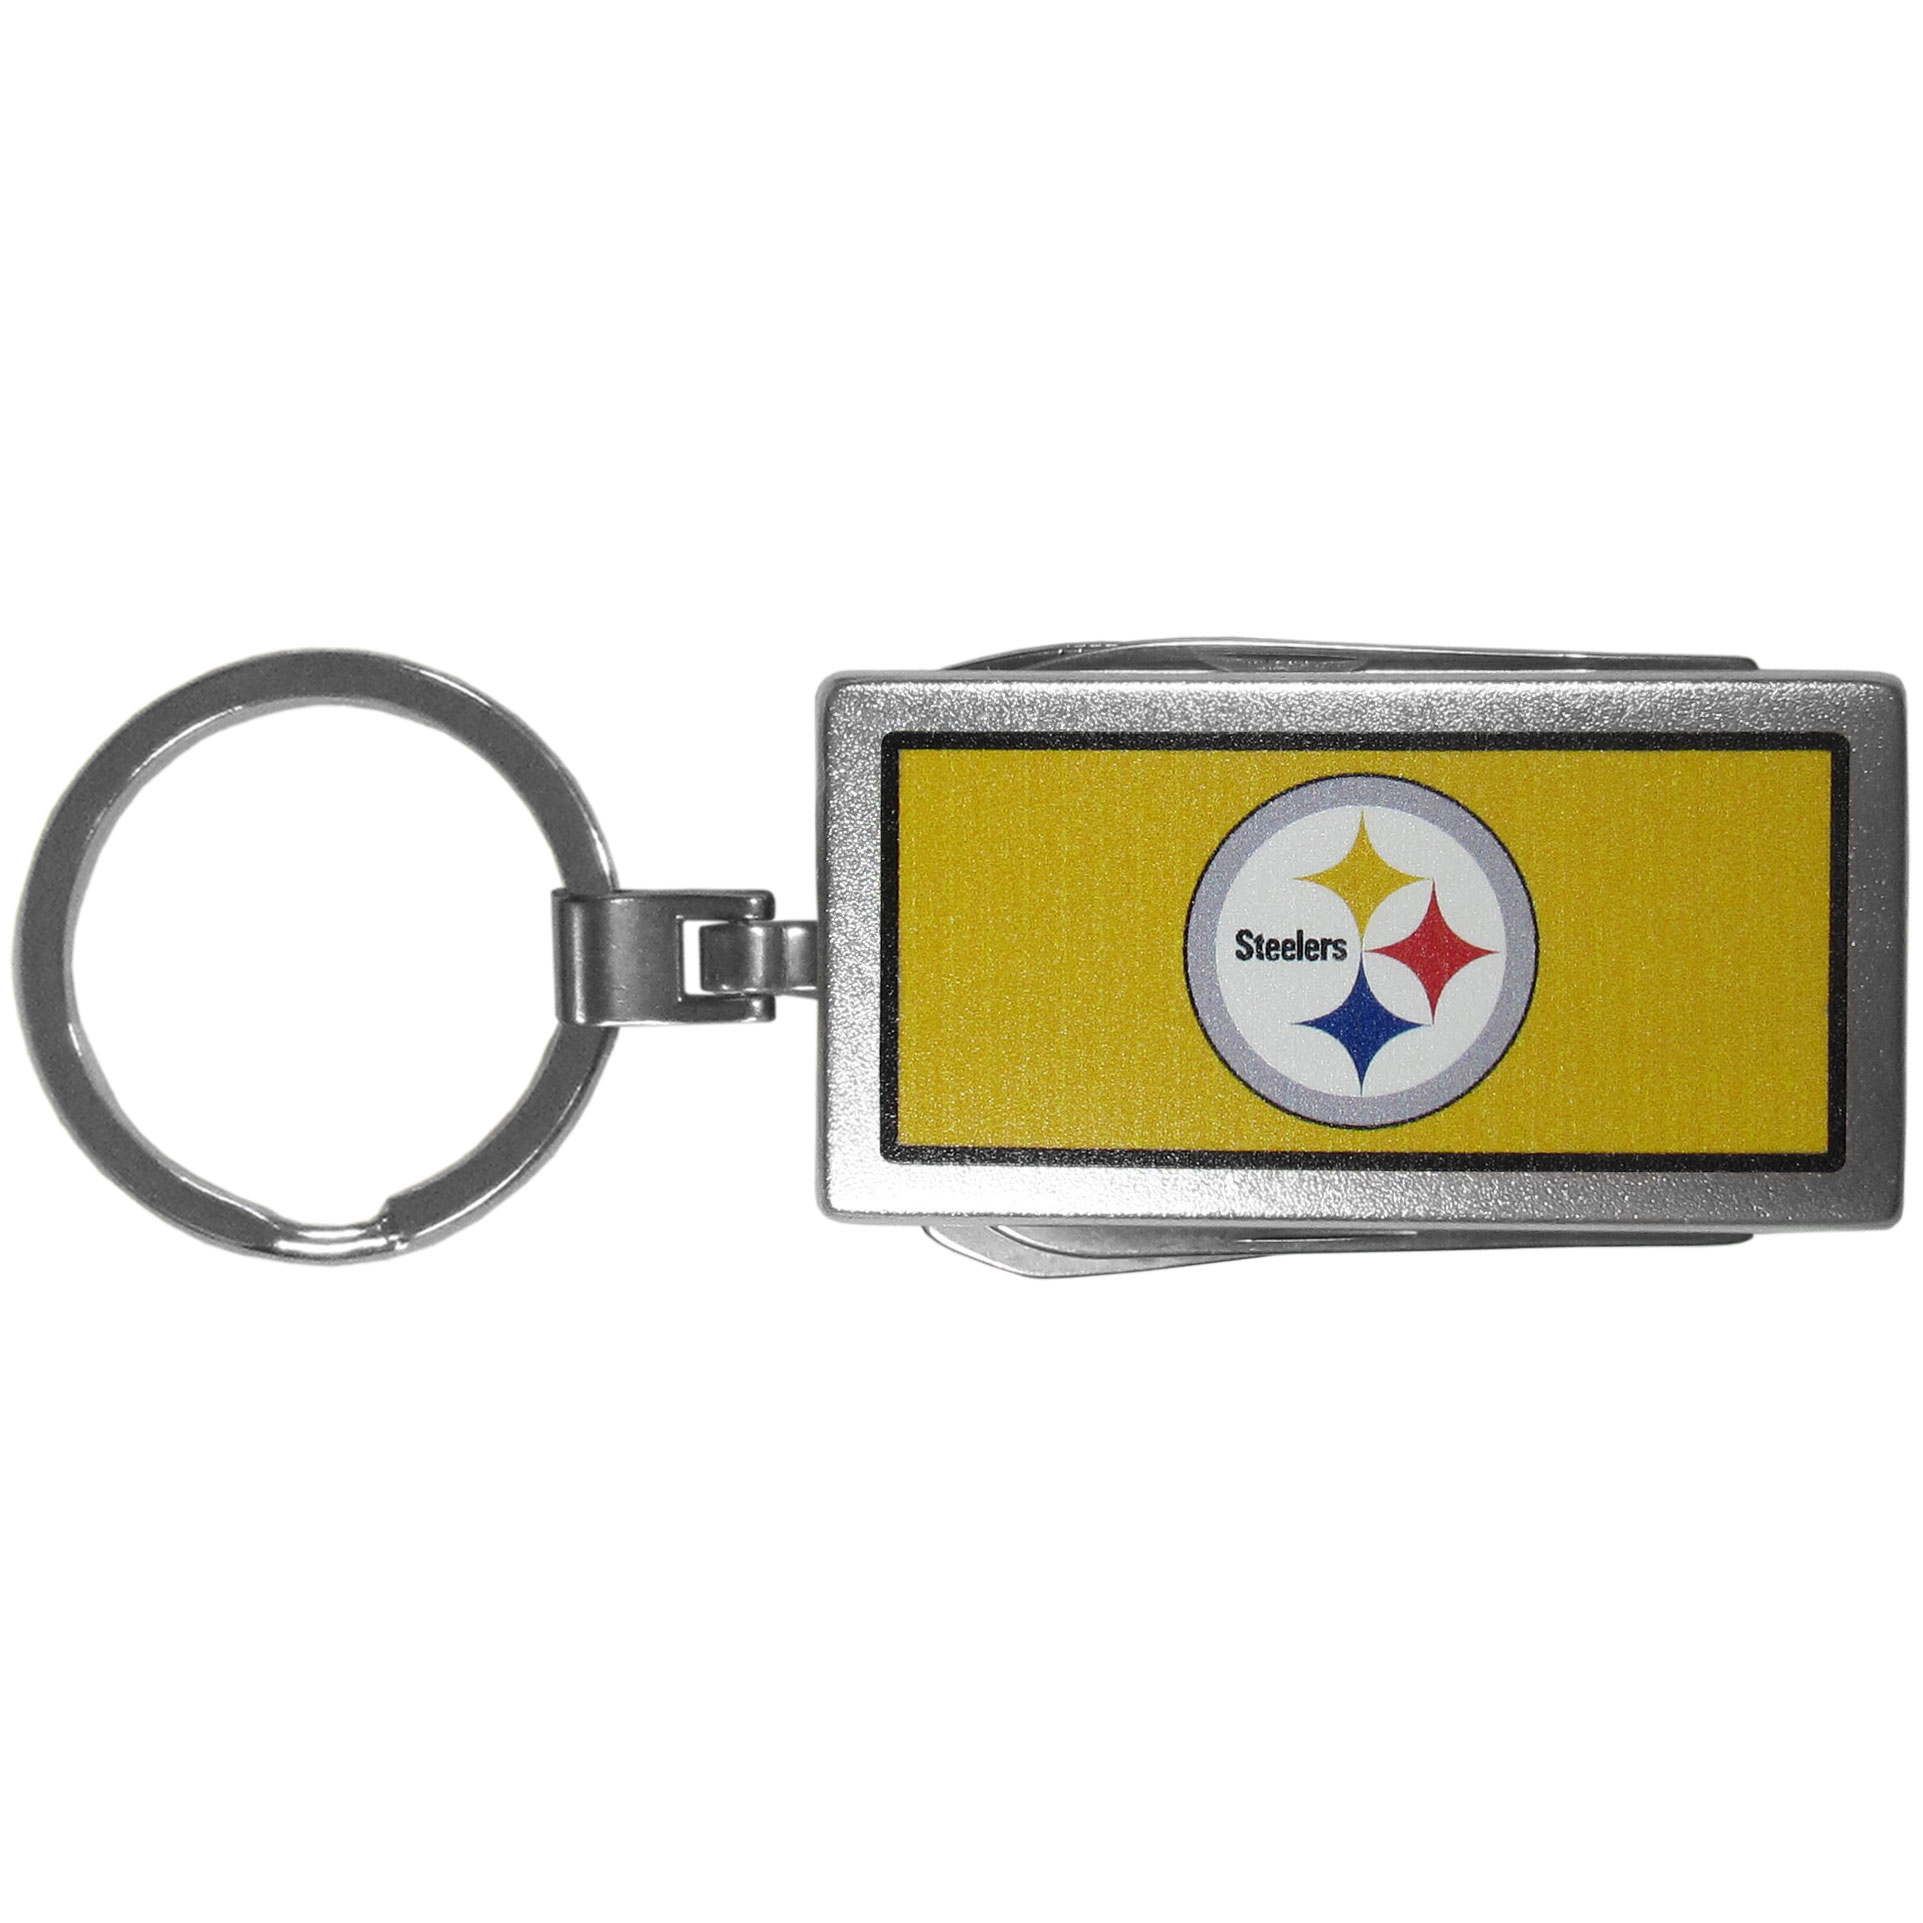 Pittsburgh Steelers Multi-tool Key Chain, Logo - Be the hero at the tailgate, camping, or on a Friday night with your Pittsburgh Steelers Multi-Tool Keychain which comes complete with bottle opener, scissors, knife, nail file and screw driver. Be it opening a package or a beverage Siskiyou's Multi-Tool Keychain goes wherever your keys do. The keychain hangs at 4 inches long when closed.